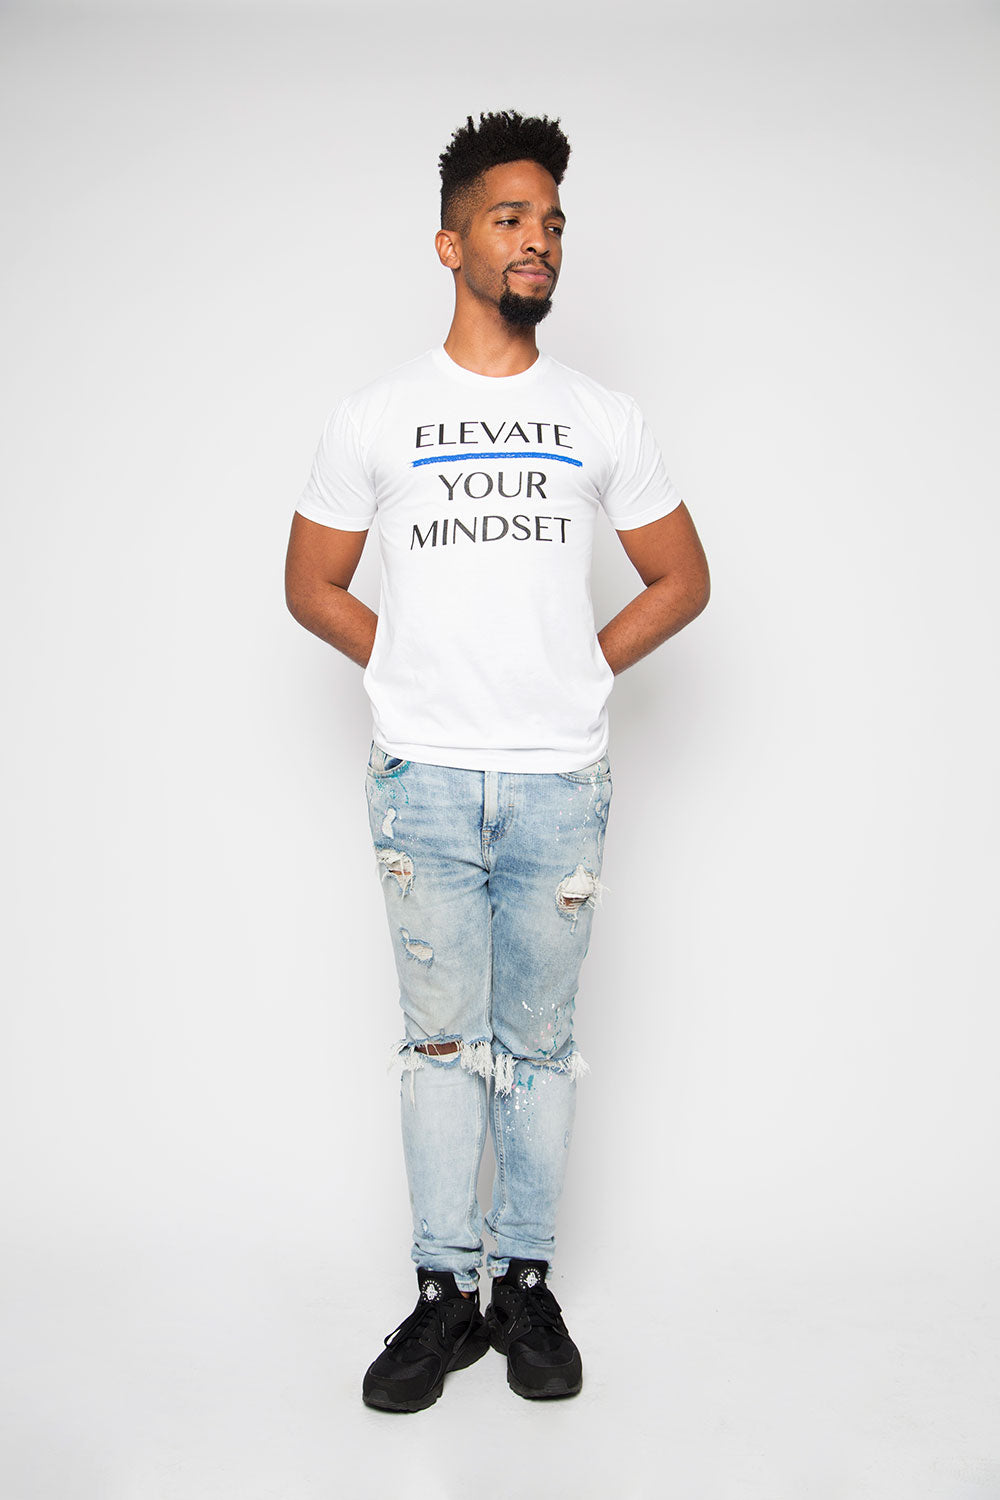 Elevate Your Mindset Shirt - Trunk Series, LLC